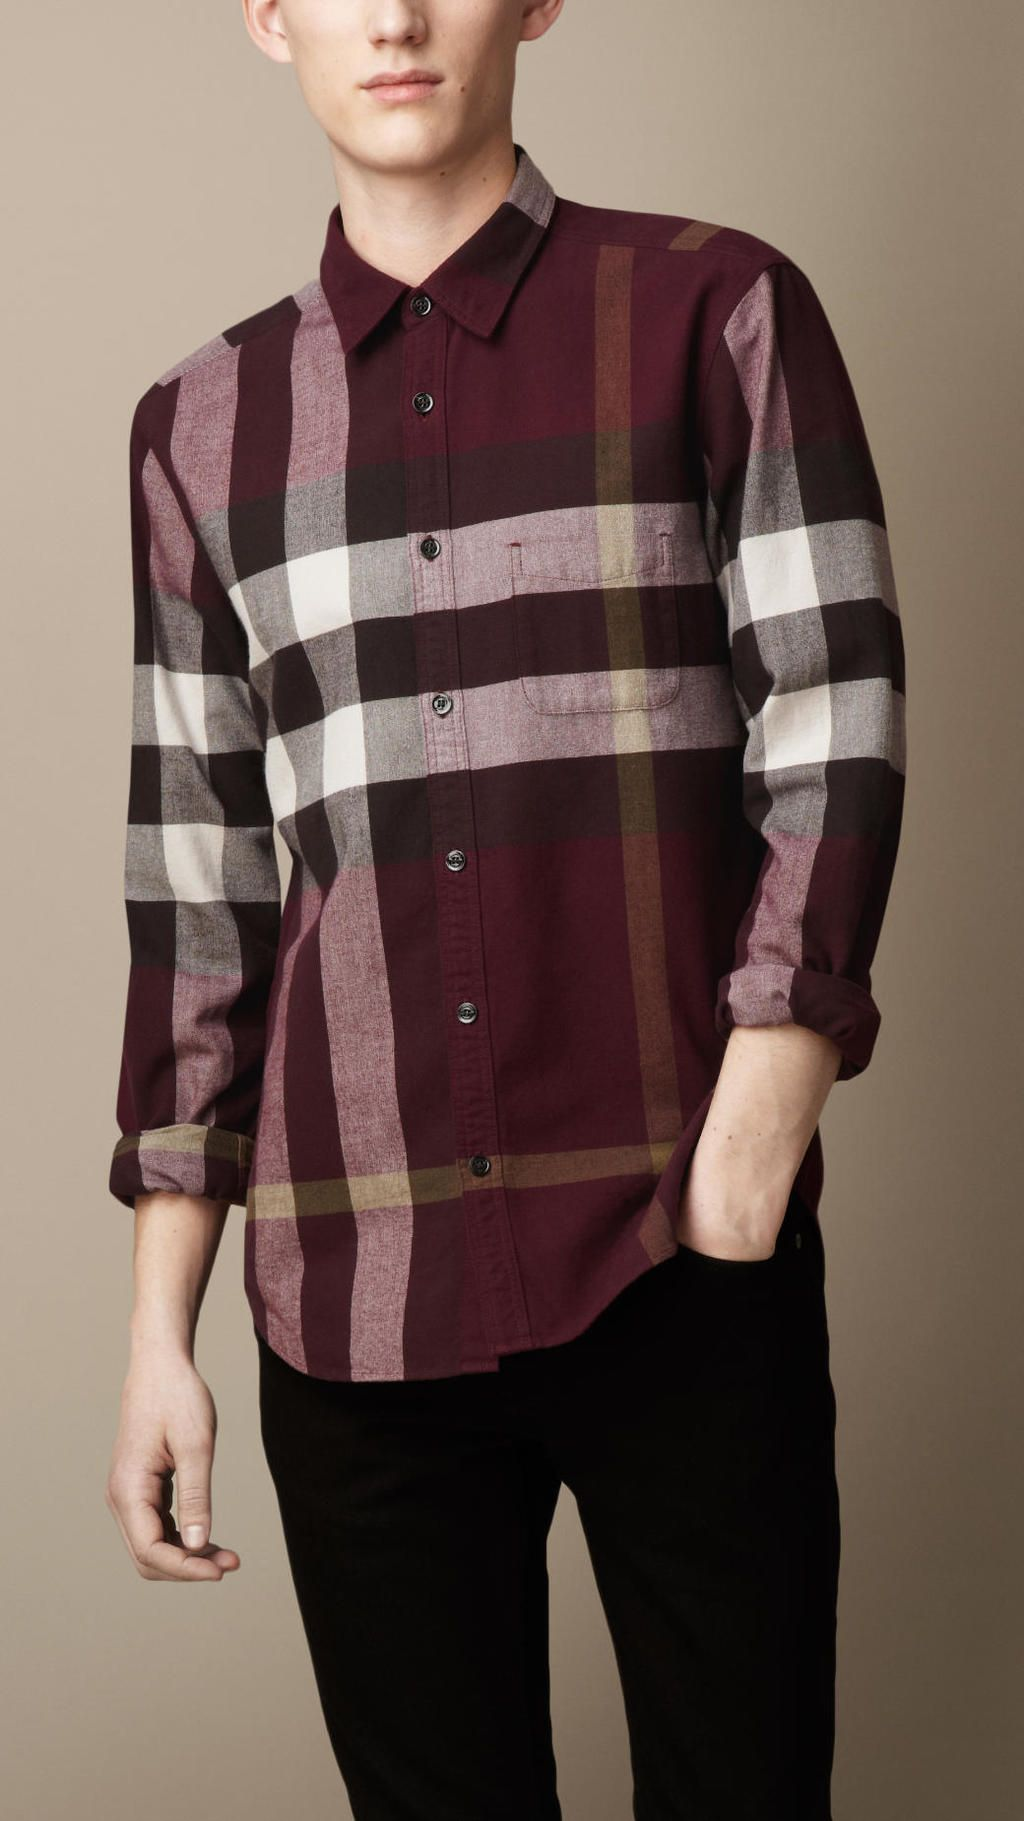 Flannel shirt men outfit  Burberry  Purple Exploded Check Flannel Shirt  Men Fashion